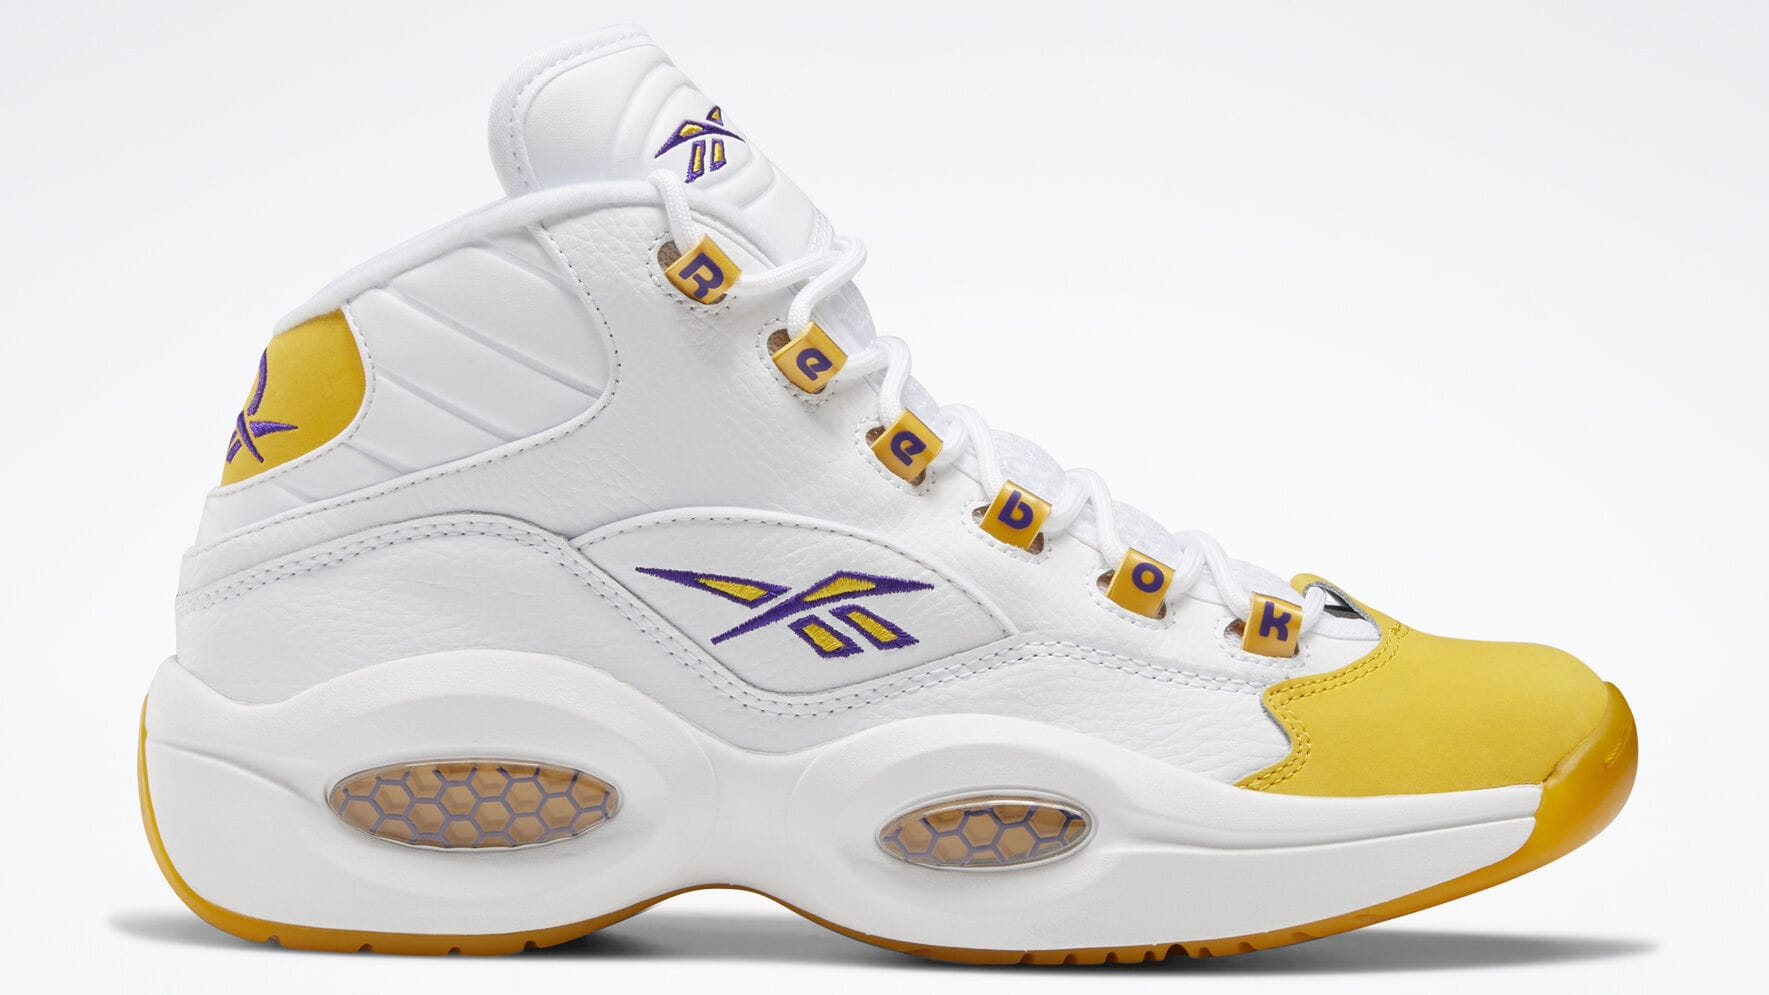 Reebok Question Kobe Yellow Toe Release Date Profile